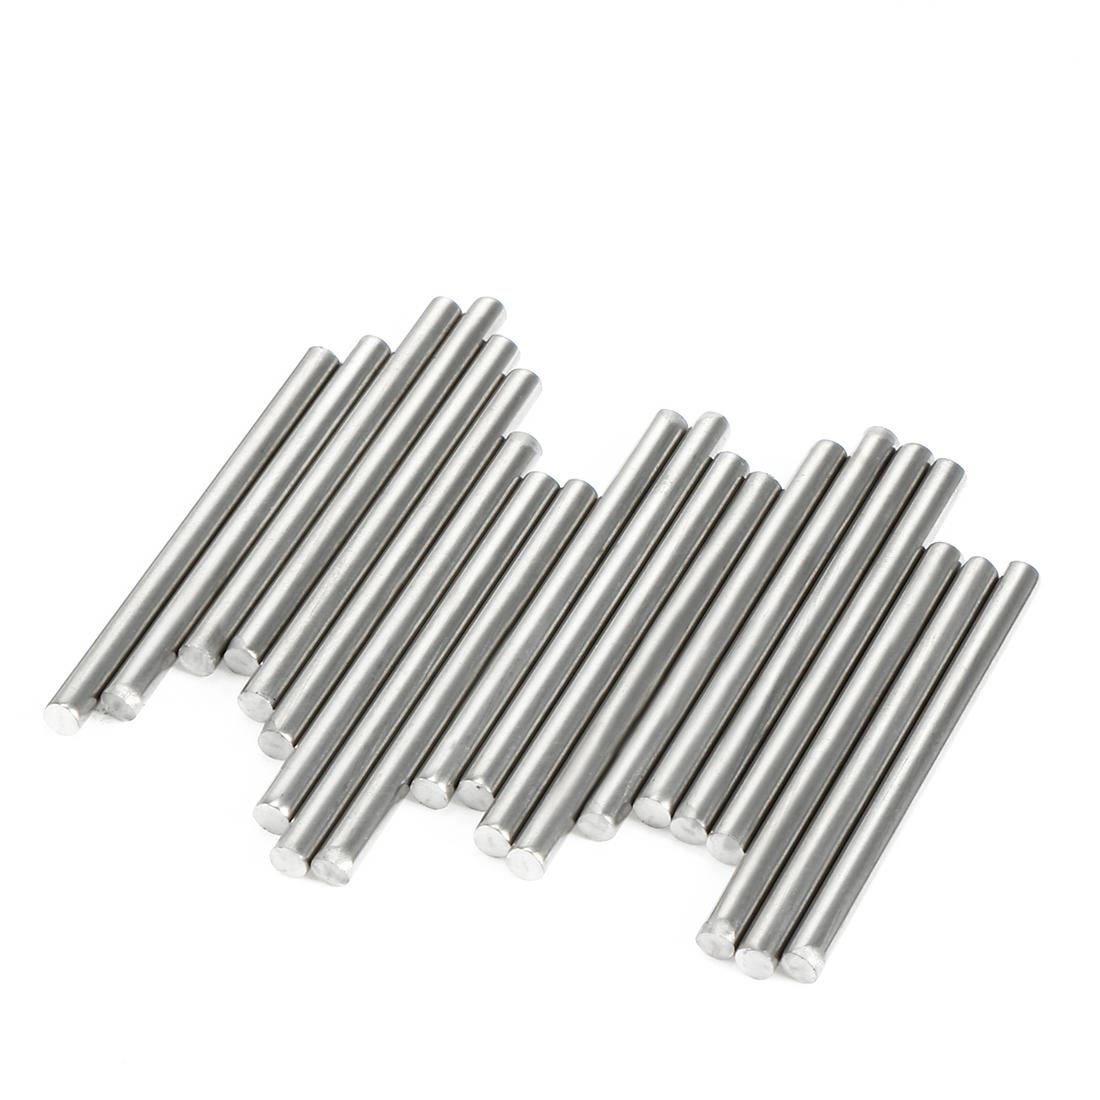 20Pcs Stainless Steel Round Shaft Rods Axles 3mm x 40mm for RC Toy Car